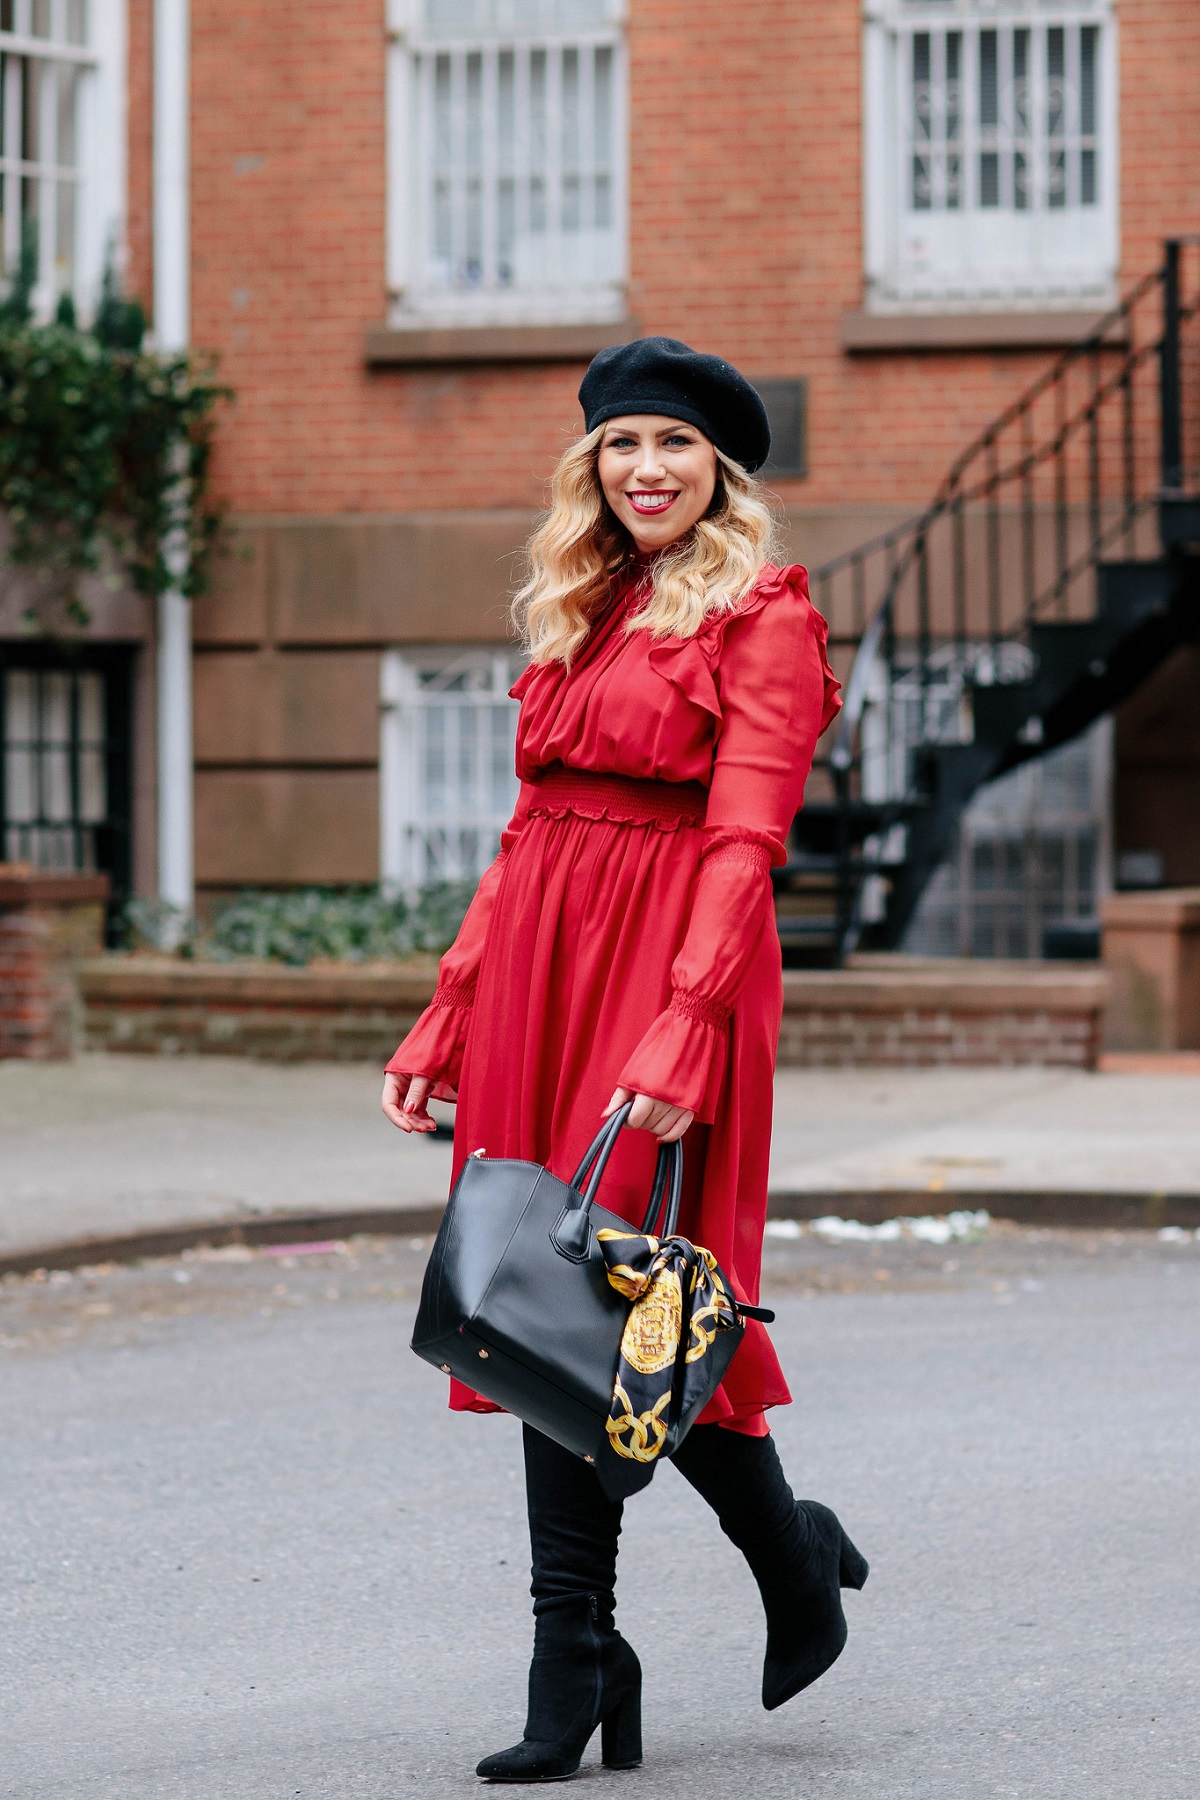 Lady in Red: Why the Color Red Will Never Go Out of Style